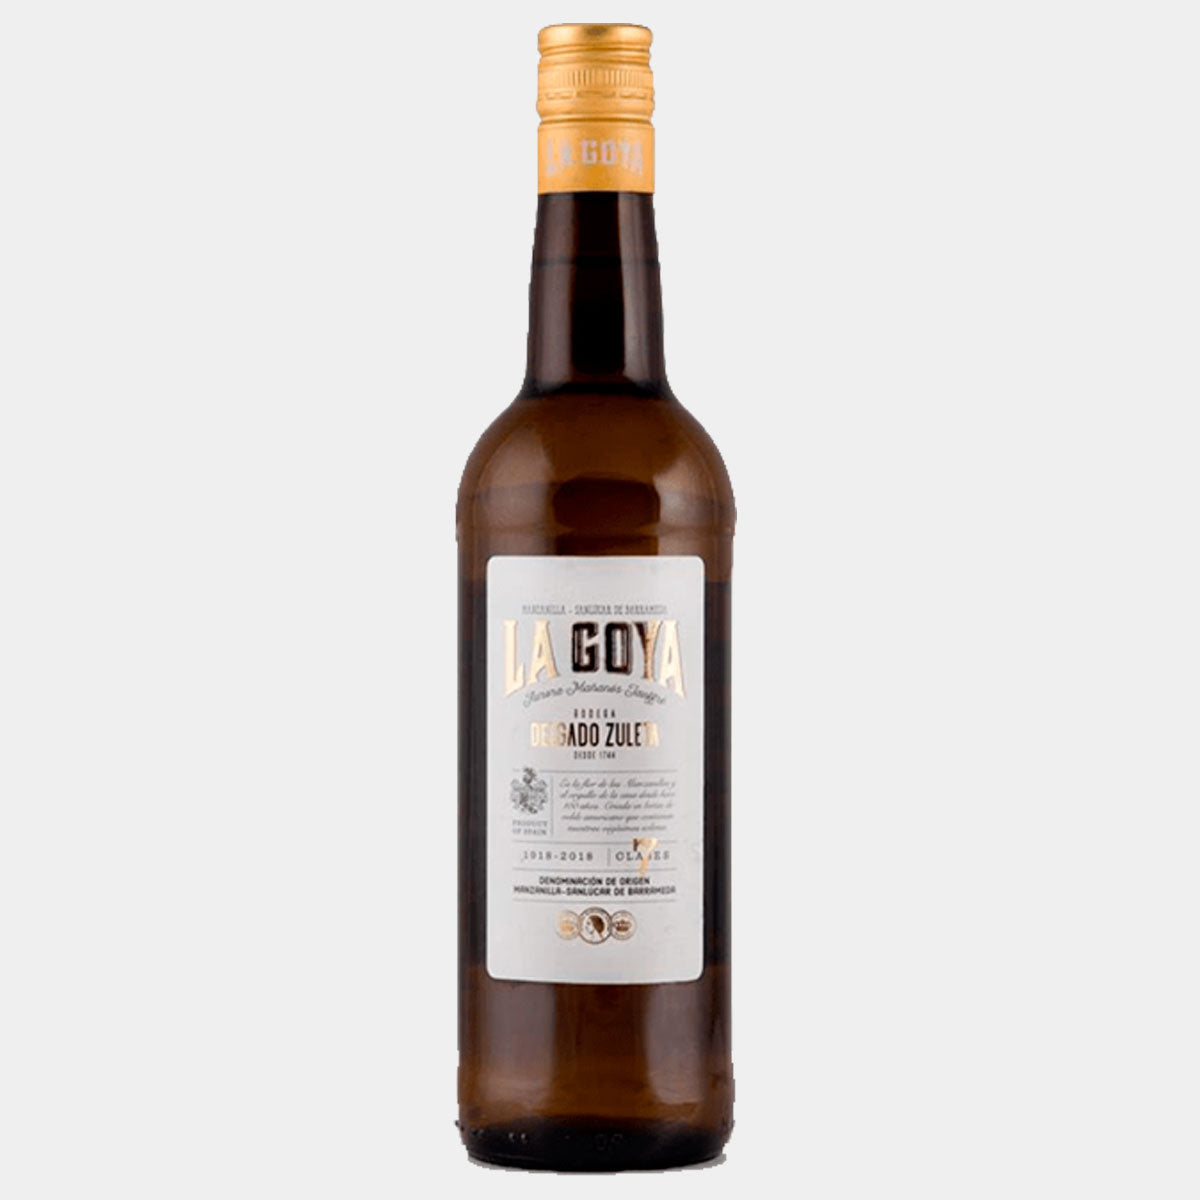 Manzanilla La Goya - Wines and Copas Barcelona